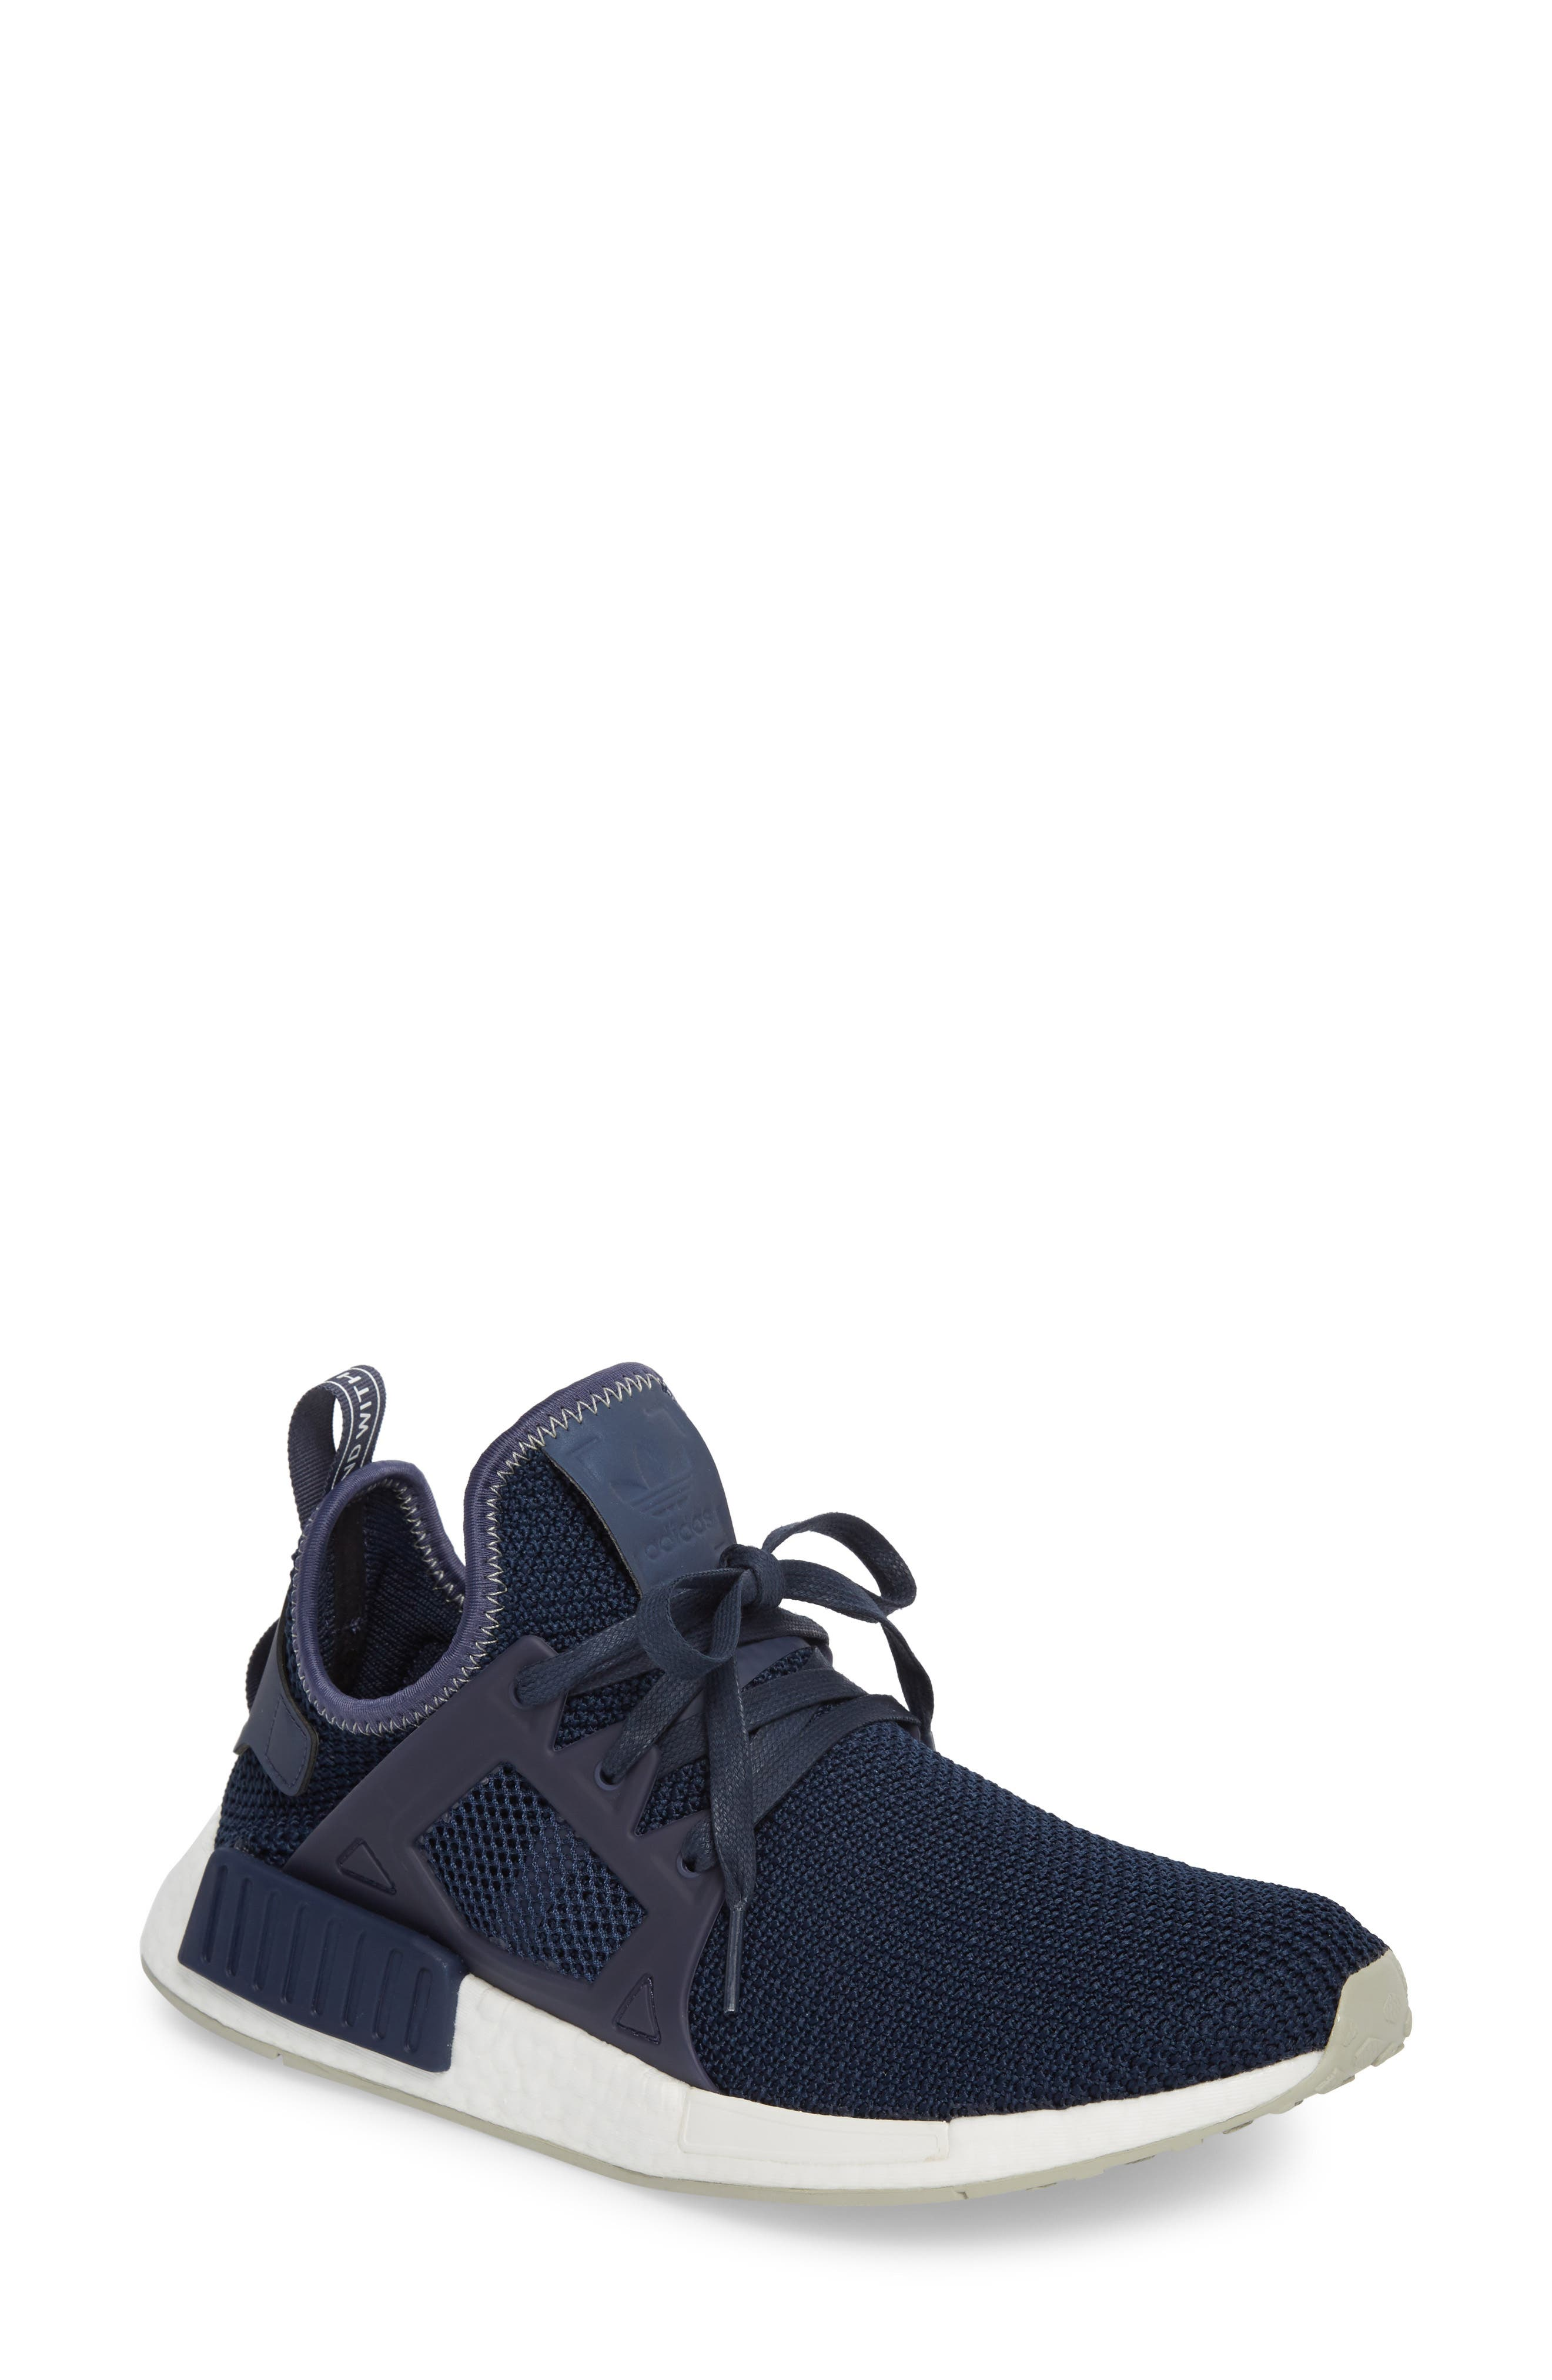 Main Image - adidas NMD XR1 Athletic Shoe (Women)